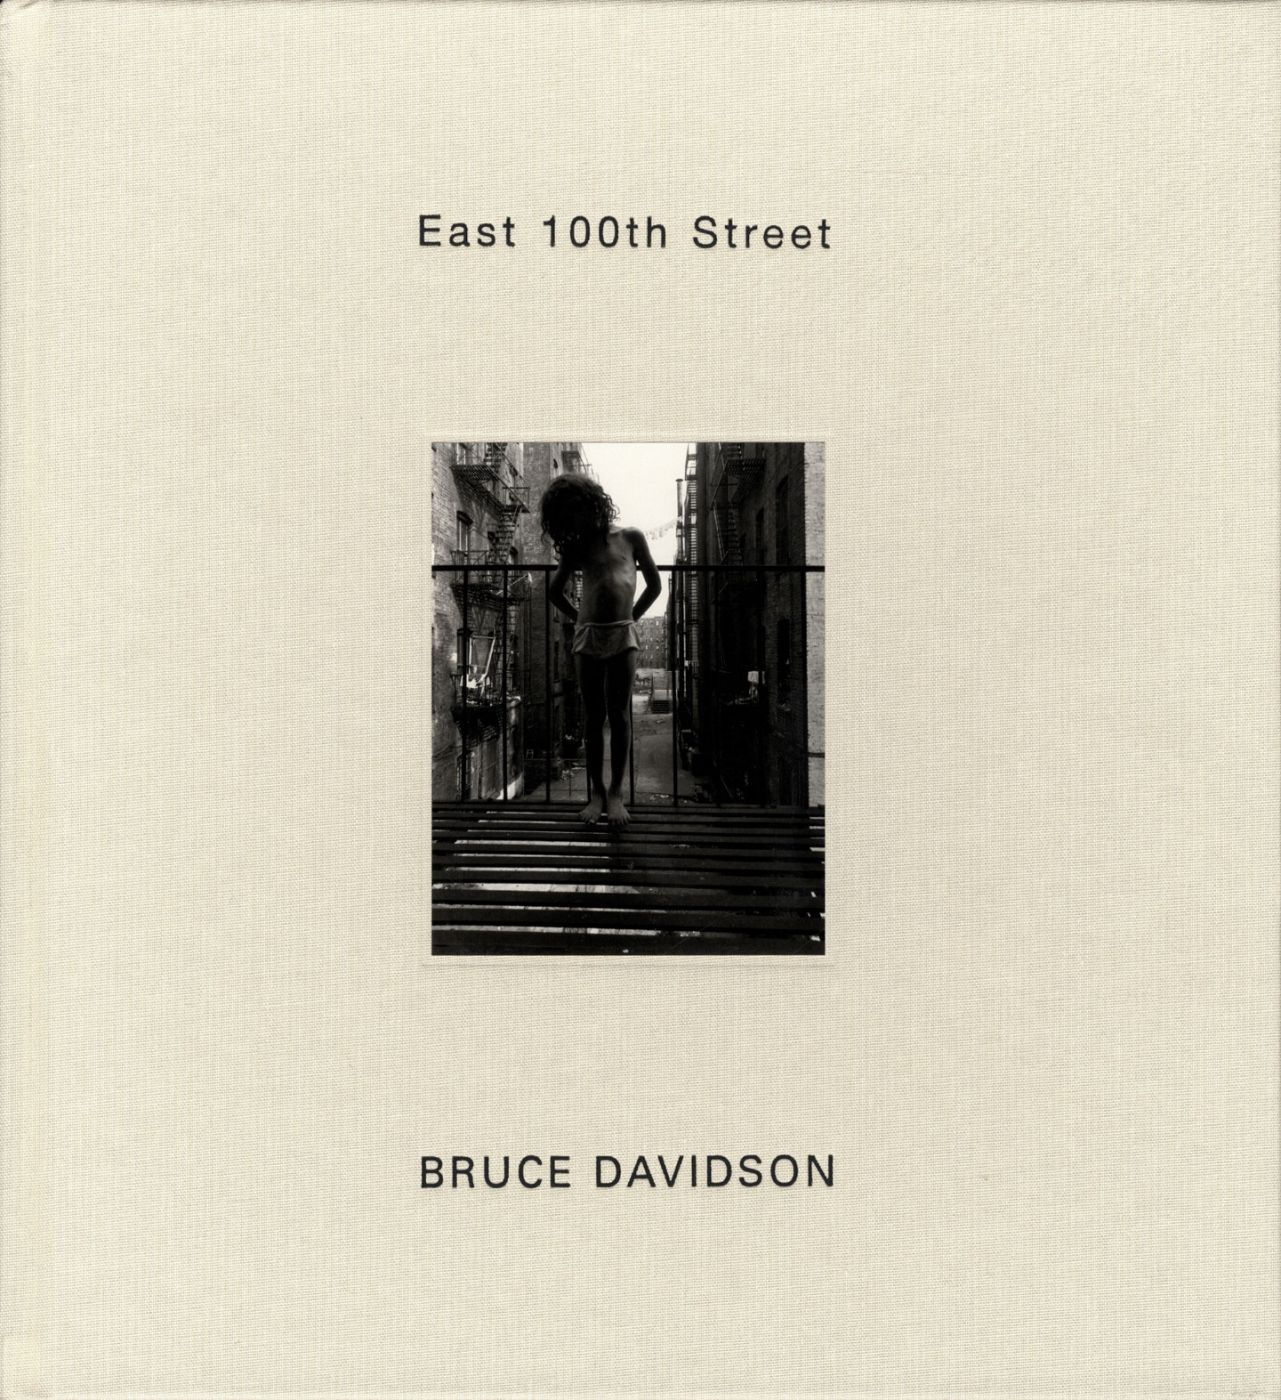 Bruce Davidson: East 100th Street (St. Ann's Press edition) [SIGNED]